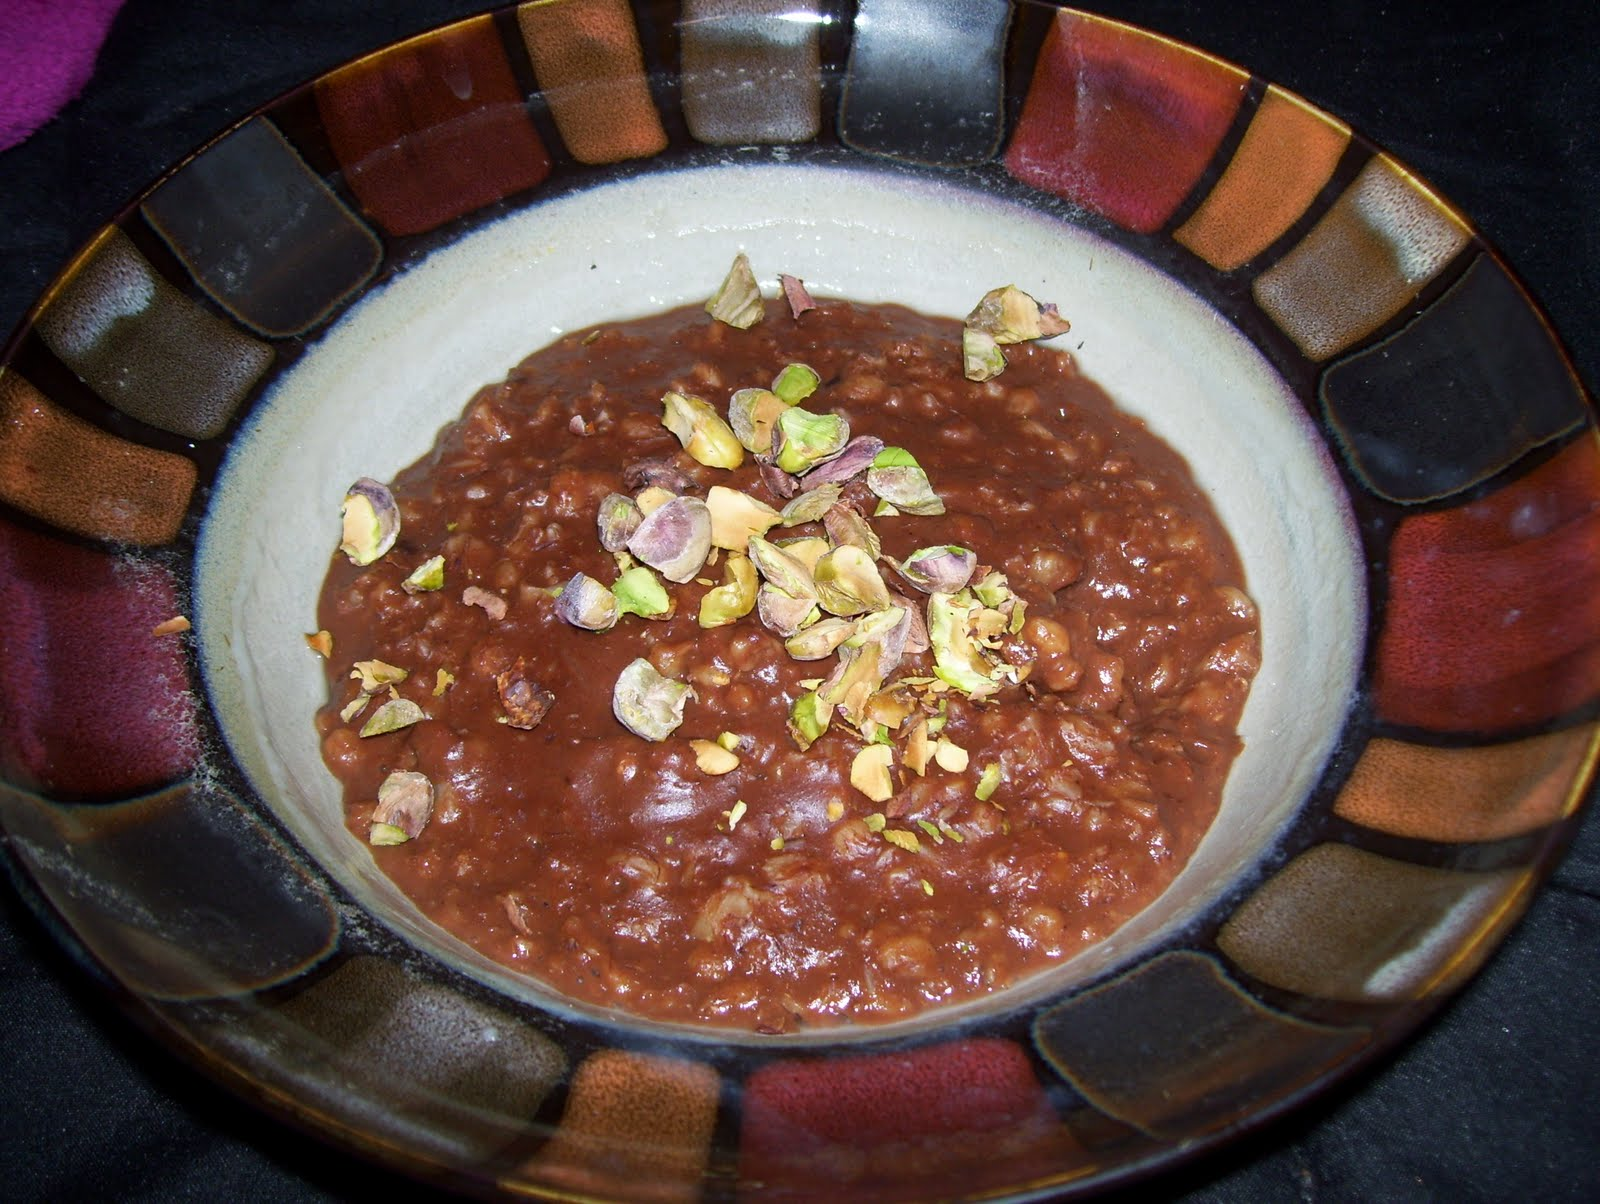 Chocolate Oatmeal with Dried Cherries and Pistachios